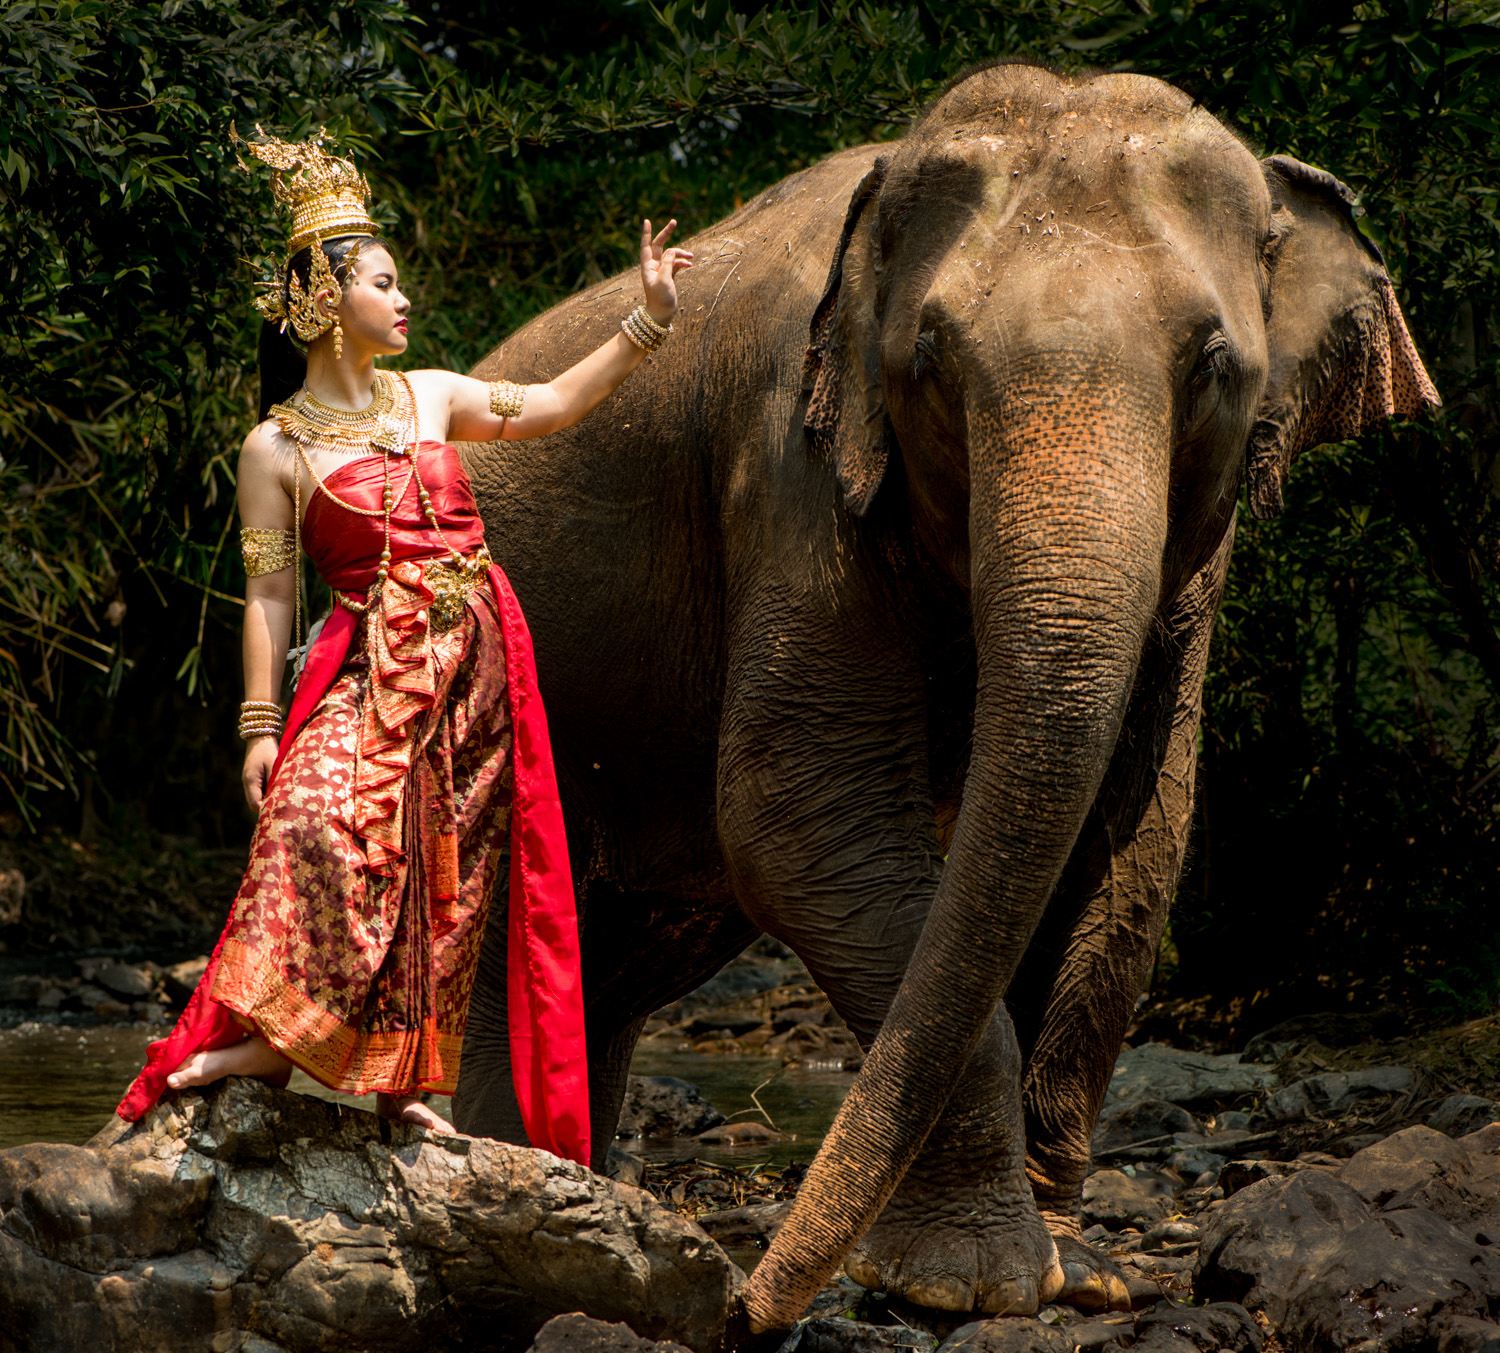 Thai Model and Elephant